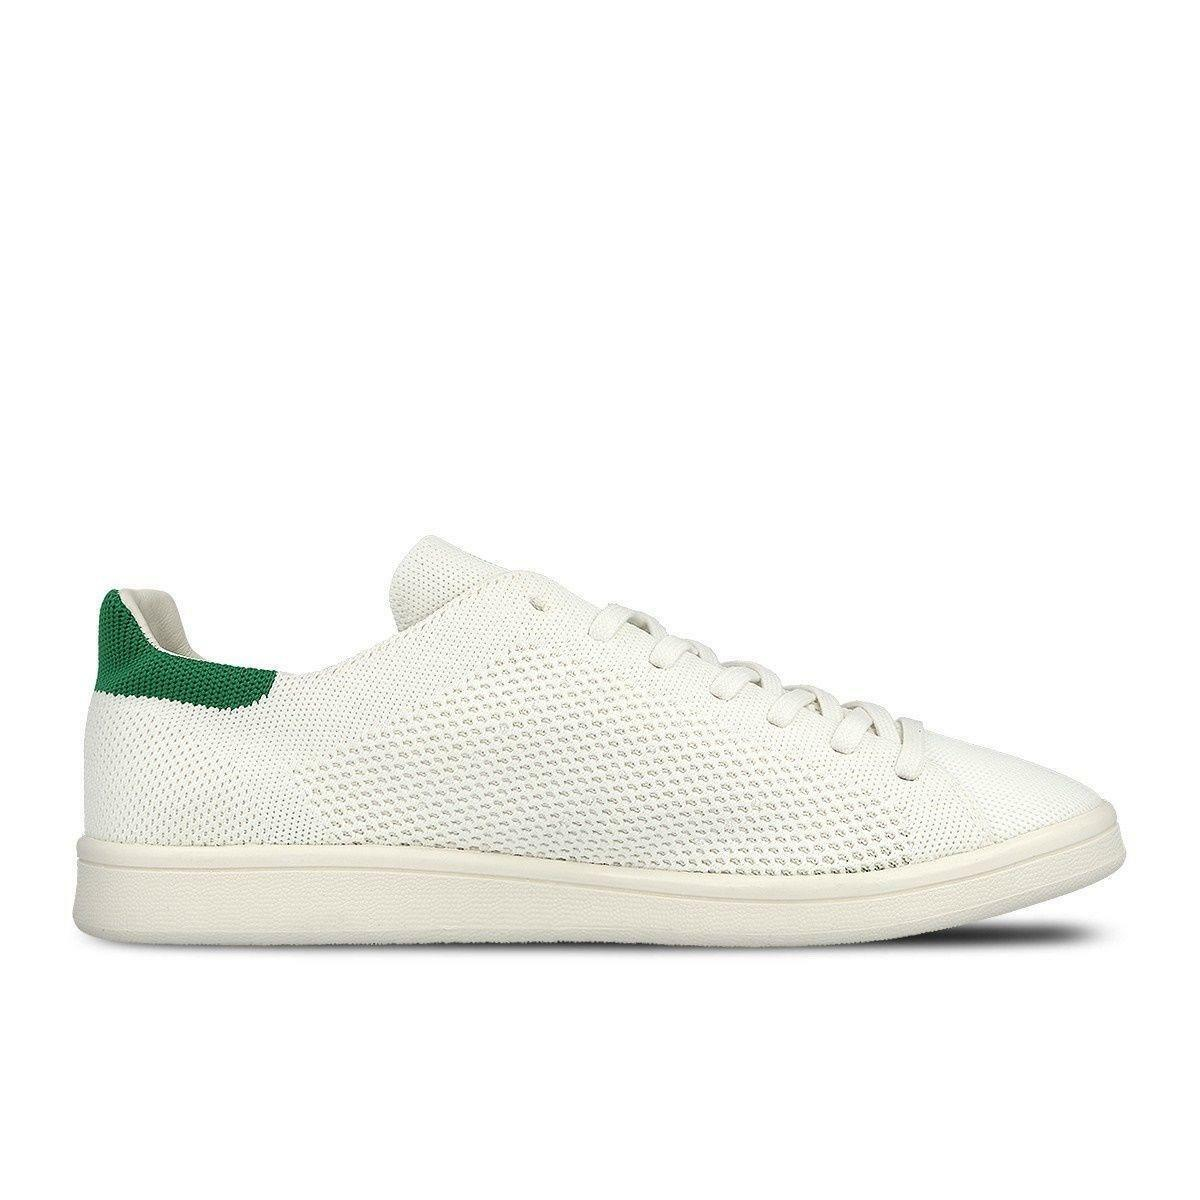 Mens ADIDAS STAN SMITH OG PK White Green Casual Trainers S75146